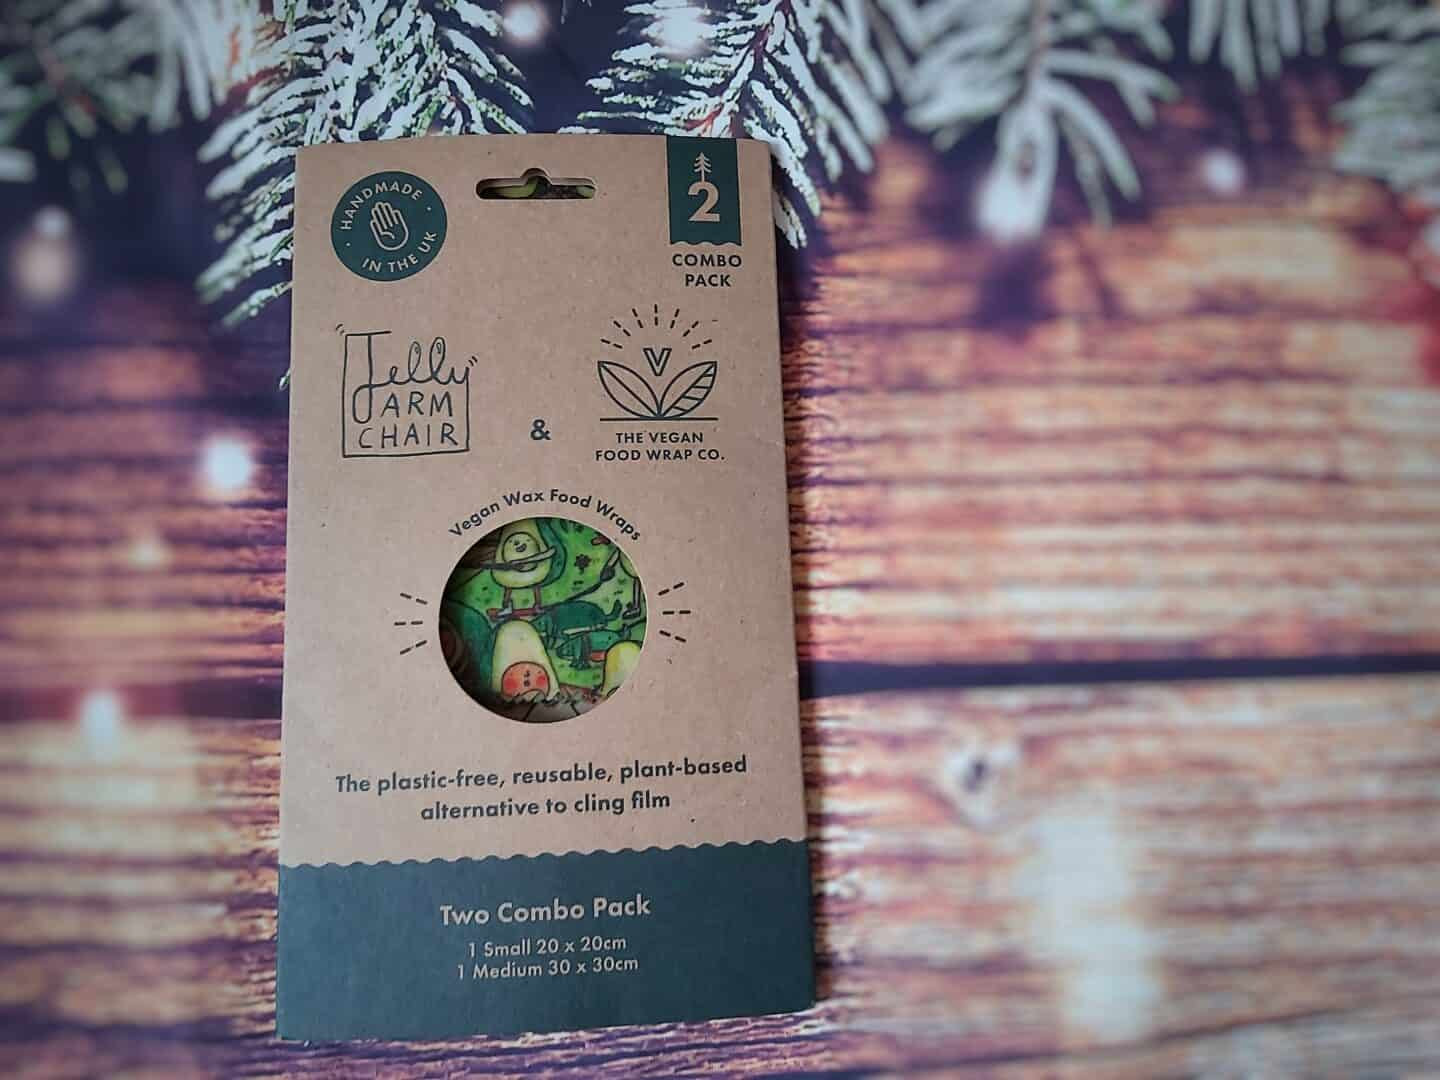 Vegan wax food wraps in recyclable cardboard packaging on festive background